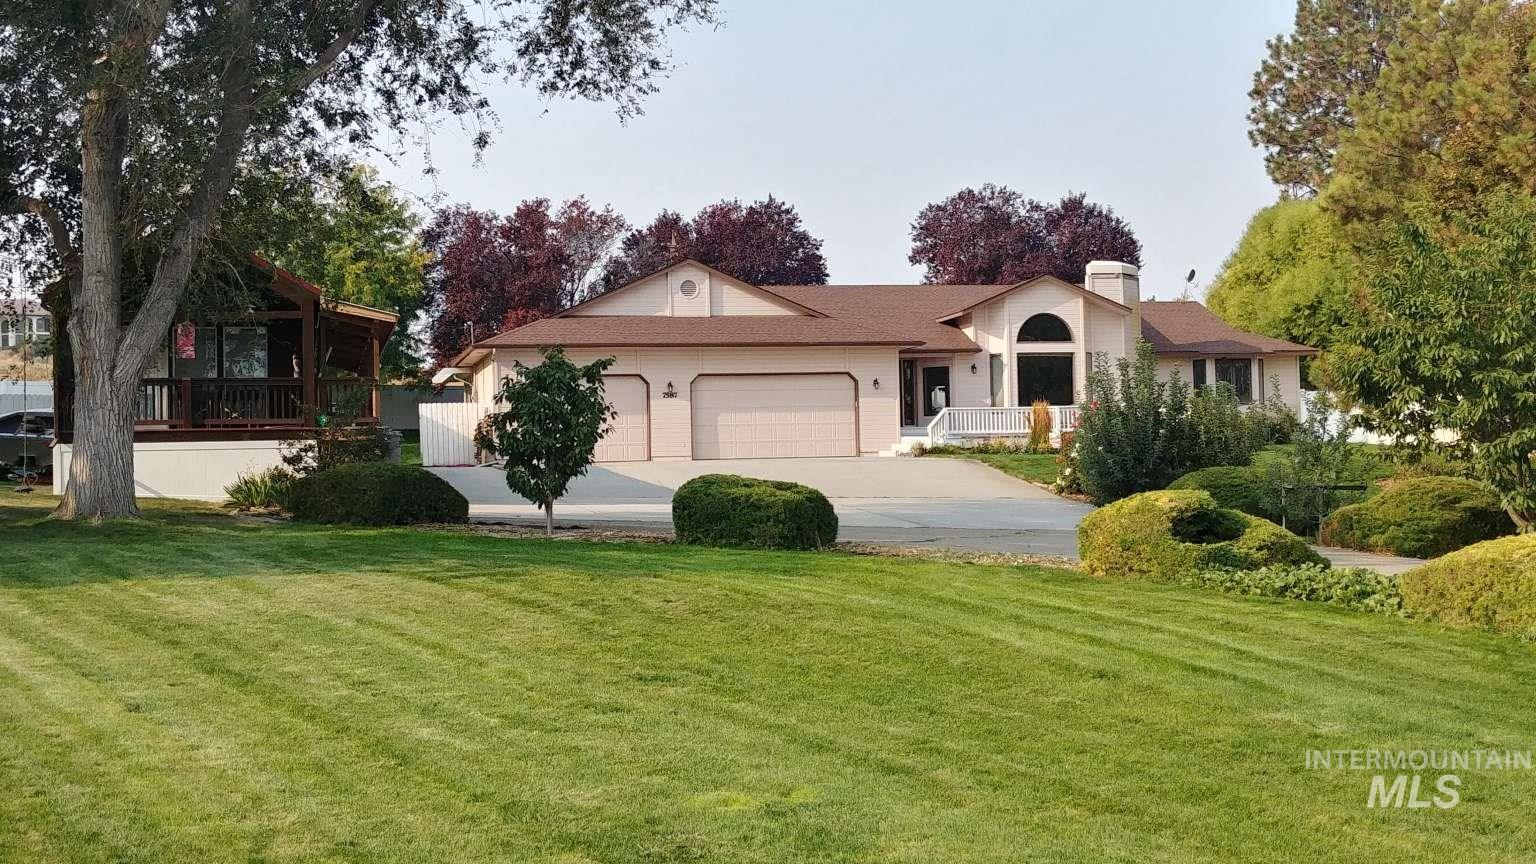 7587 Madden Dr, Nampa, Idaho 83686, 4 Bedrooms, 2.5 Bathrooms, Residential For Sale, Price $639,000, 98784973